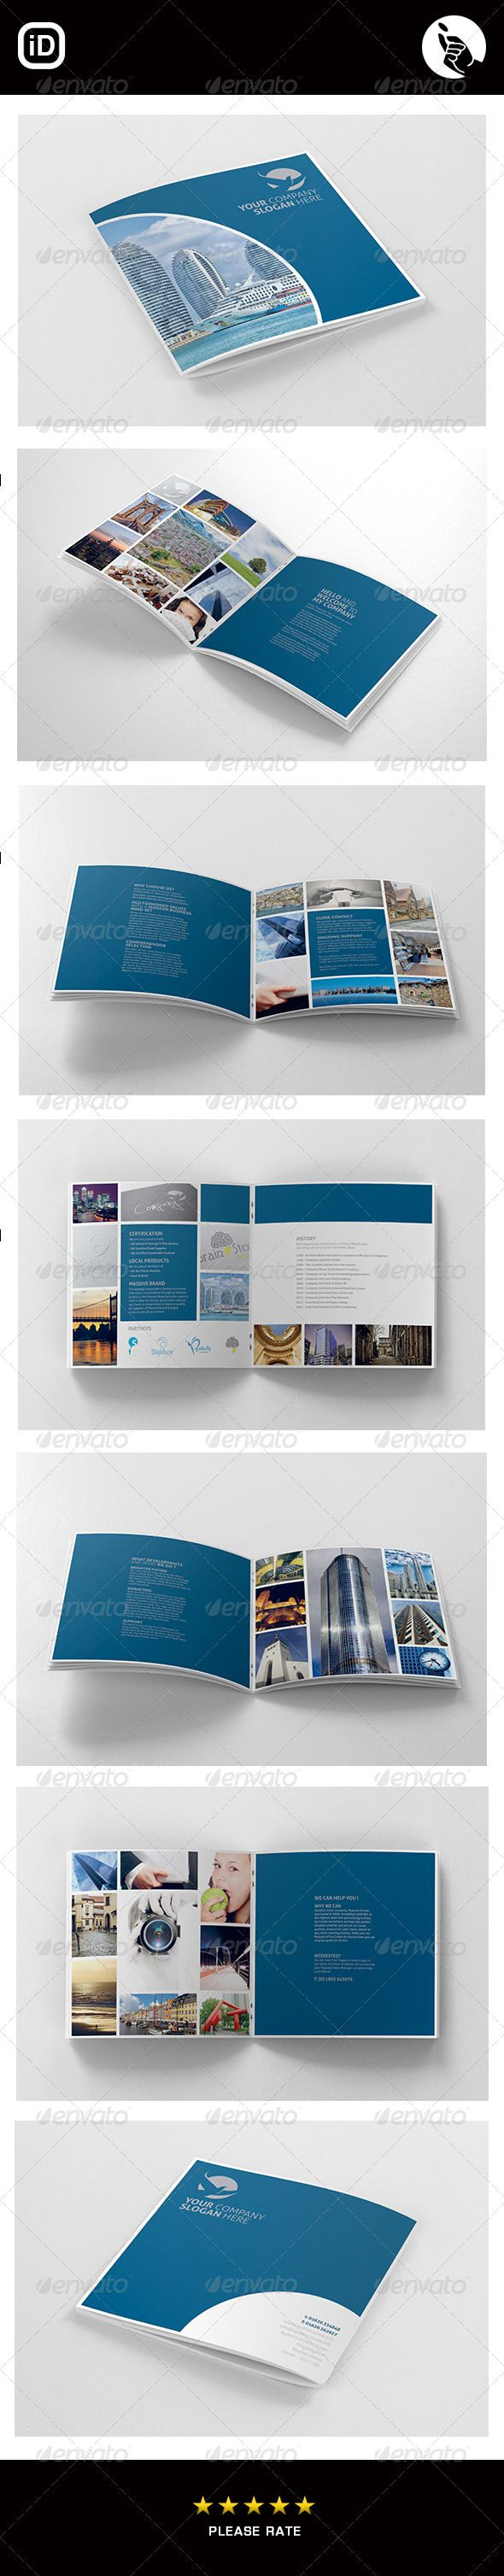 Corporate Square 12 Page Brochure – Corporate Brochures Throughout 12 Page Brochure Template